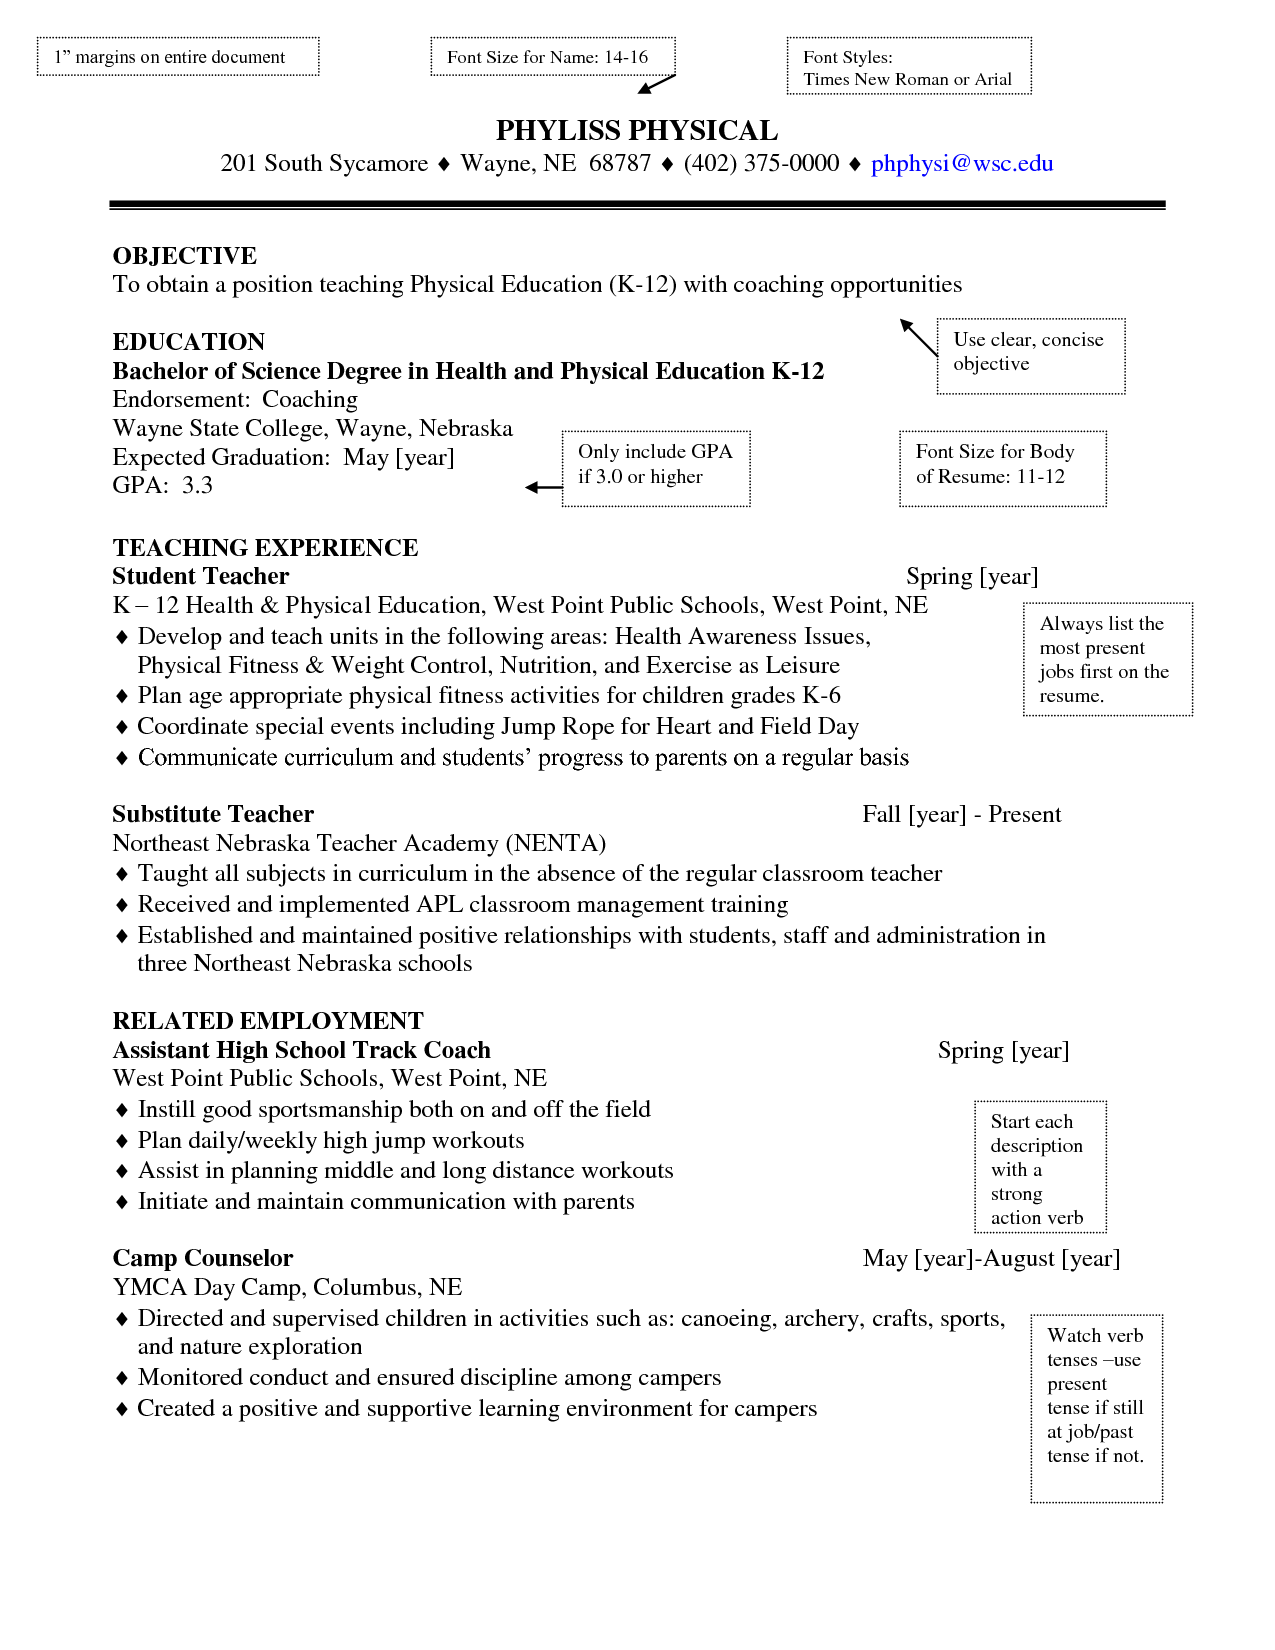 samples of special education teacher resumes cover